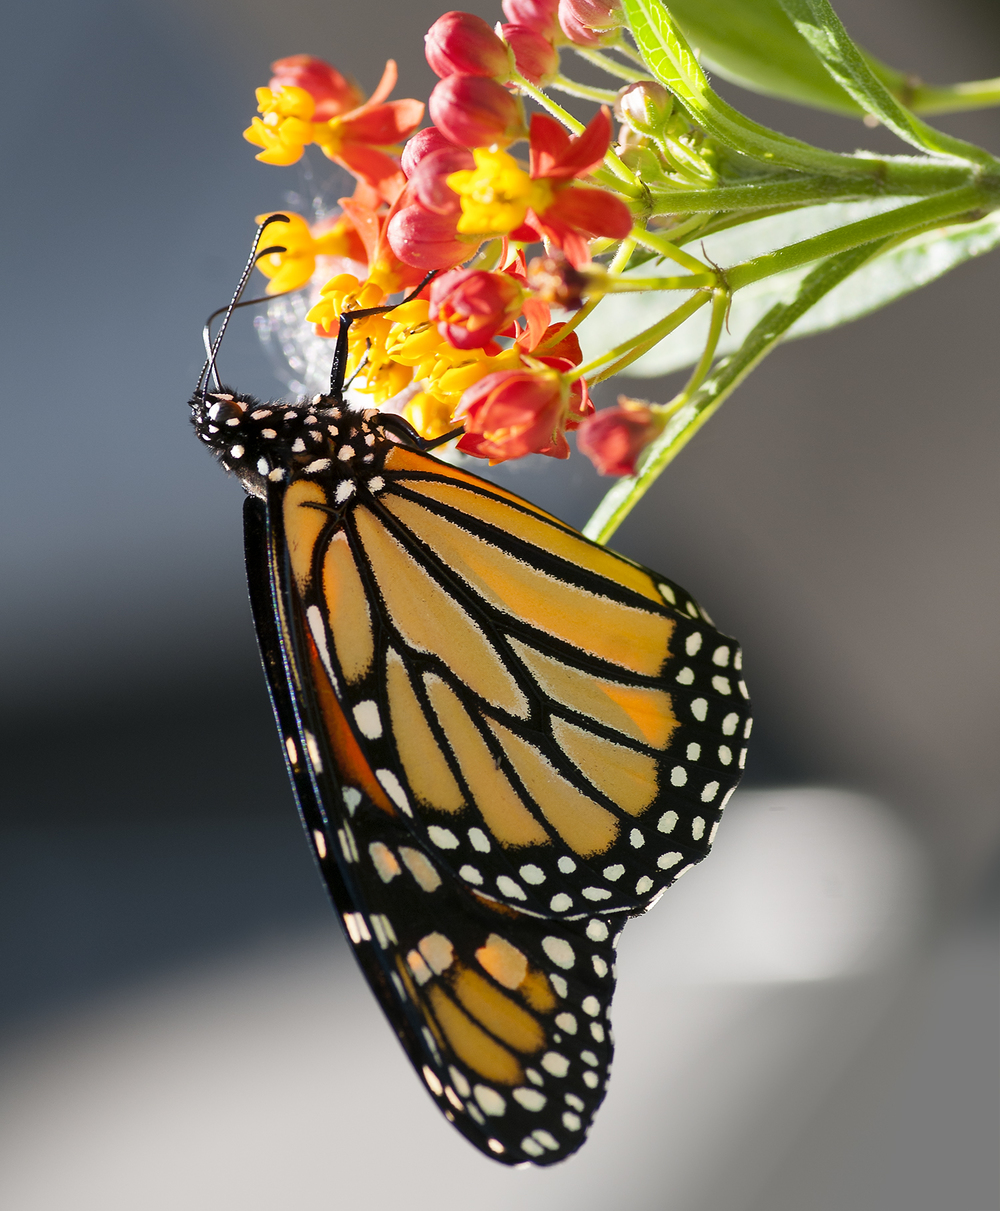 Adult Monarch - Danaus plexippus ♀